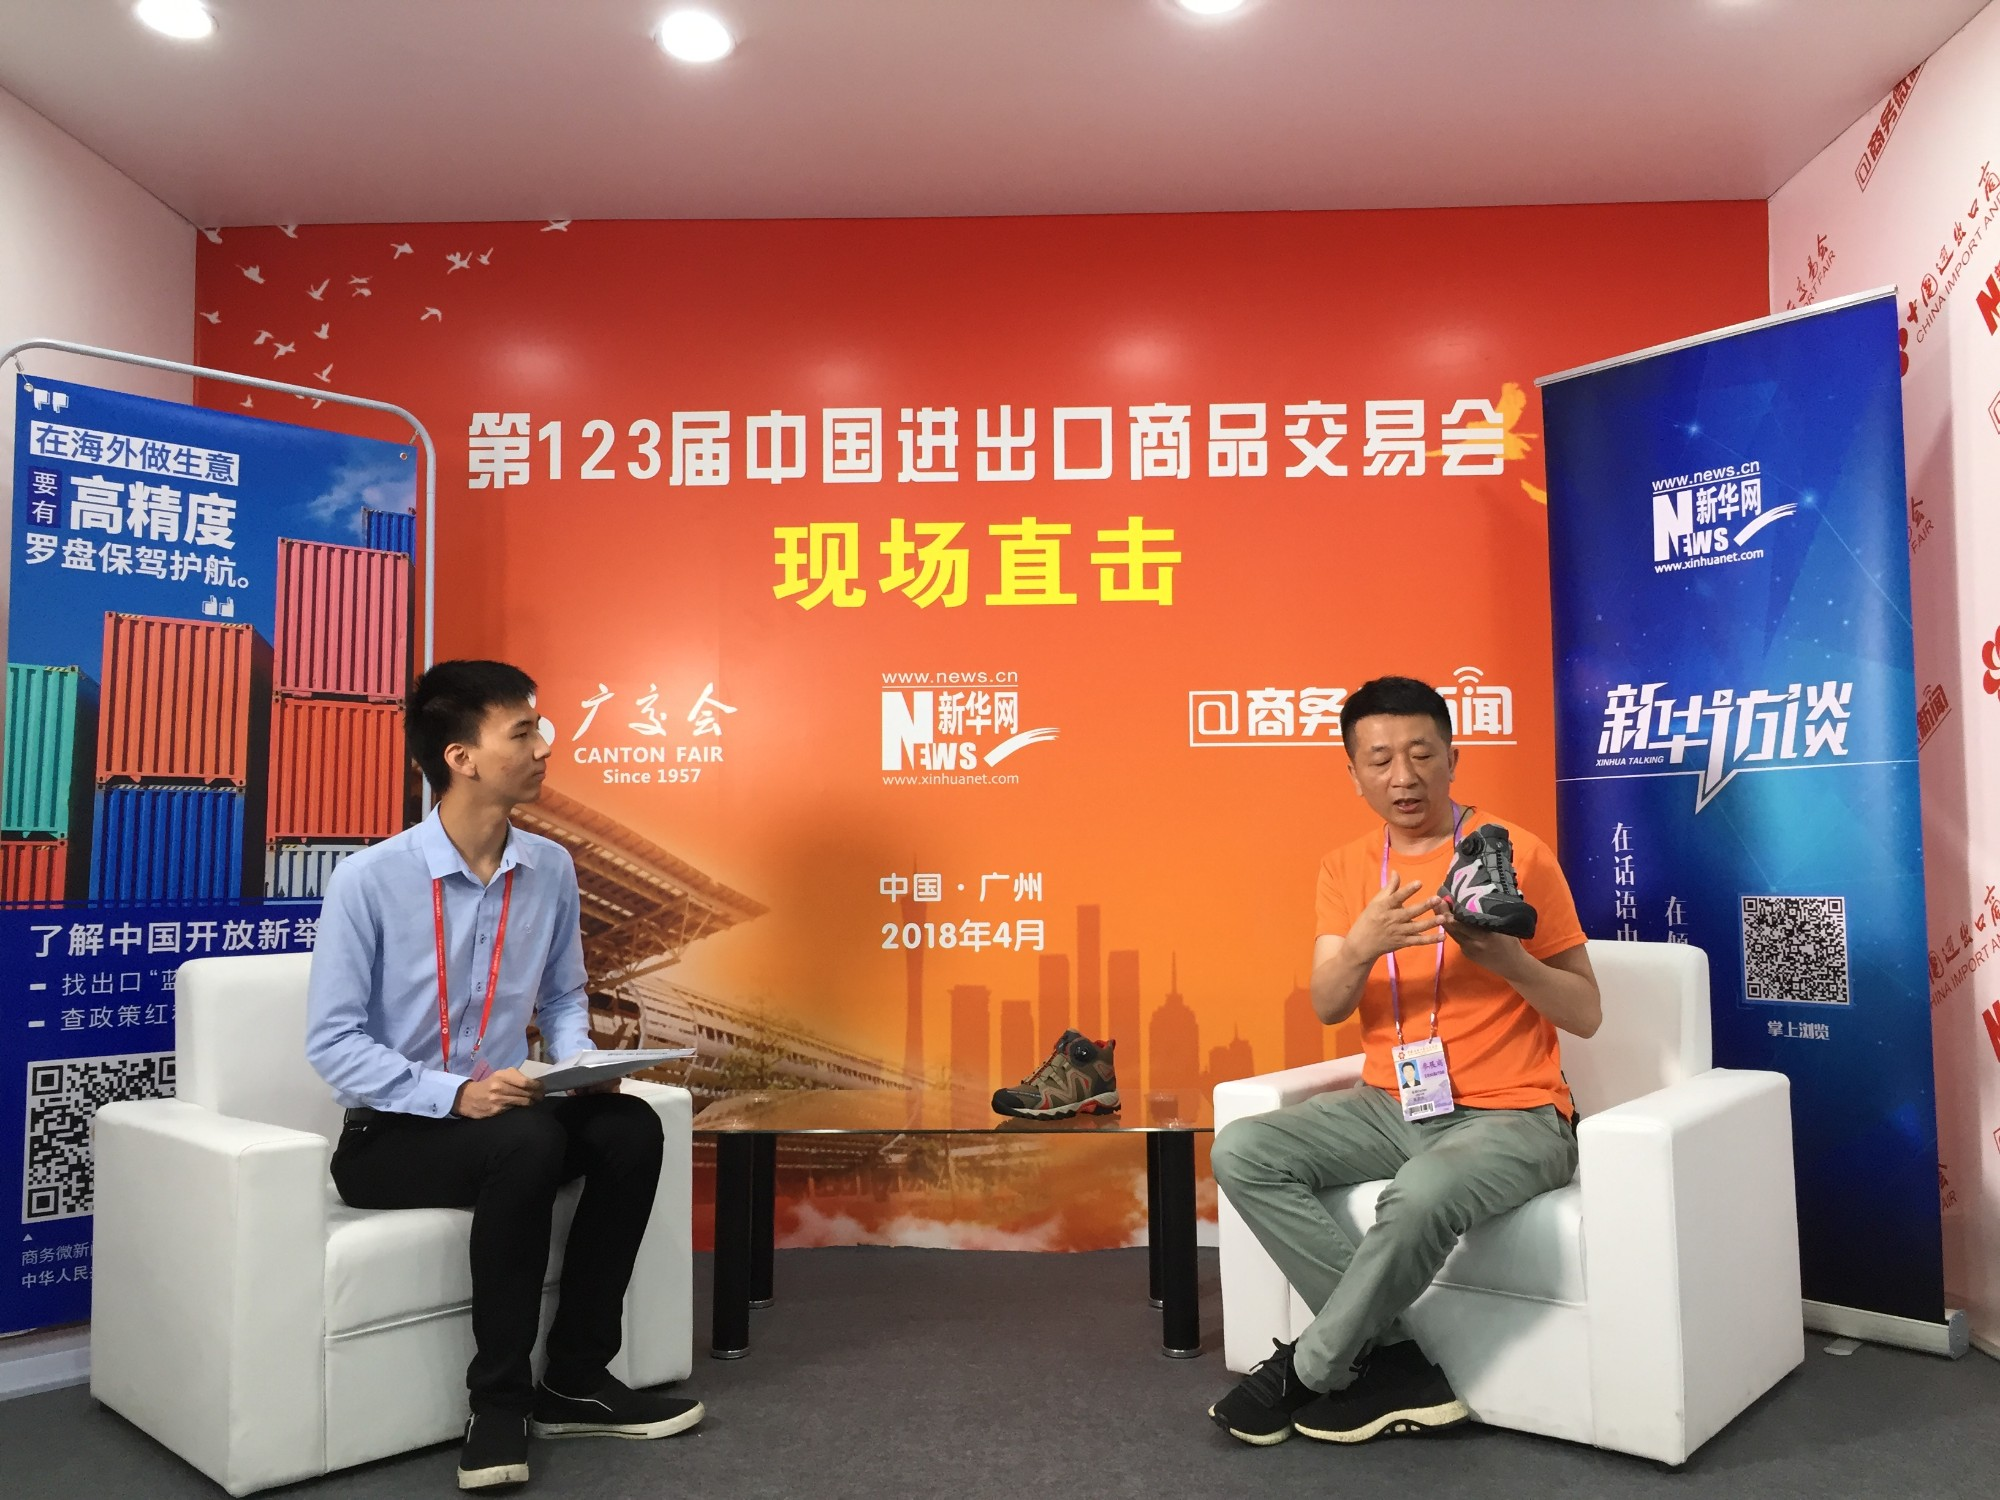 May 2018 The 123th China Import and Export Fair